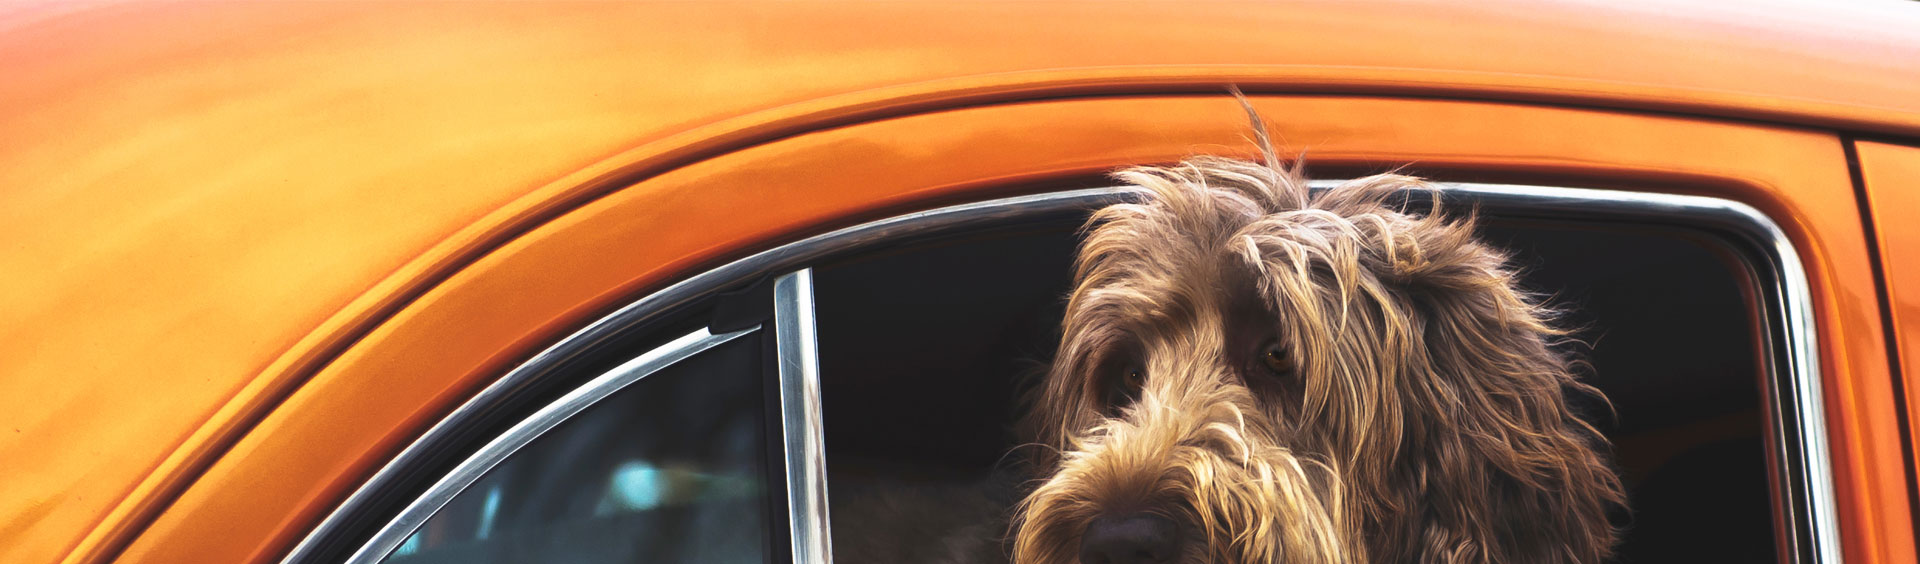 Dog leaning out the window of a vintage orange car